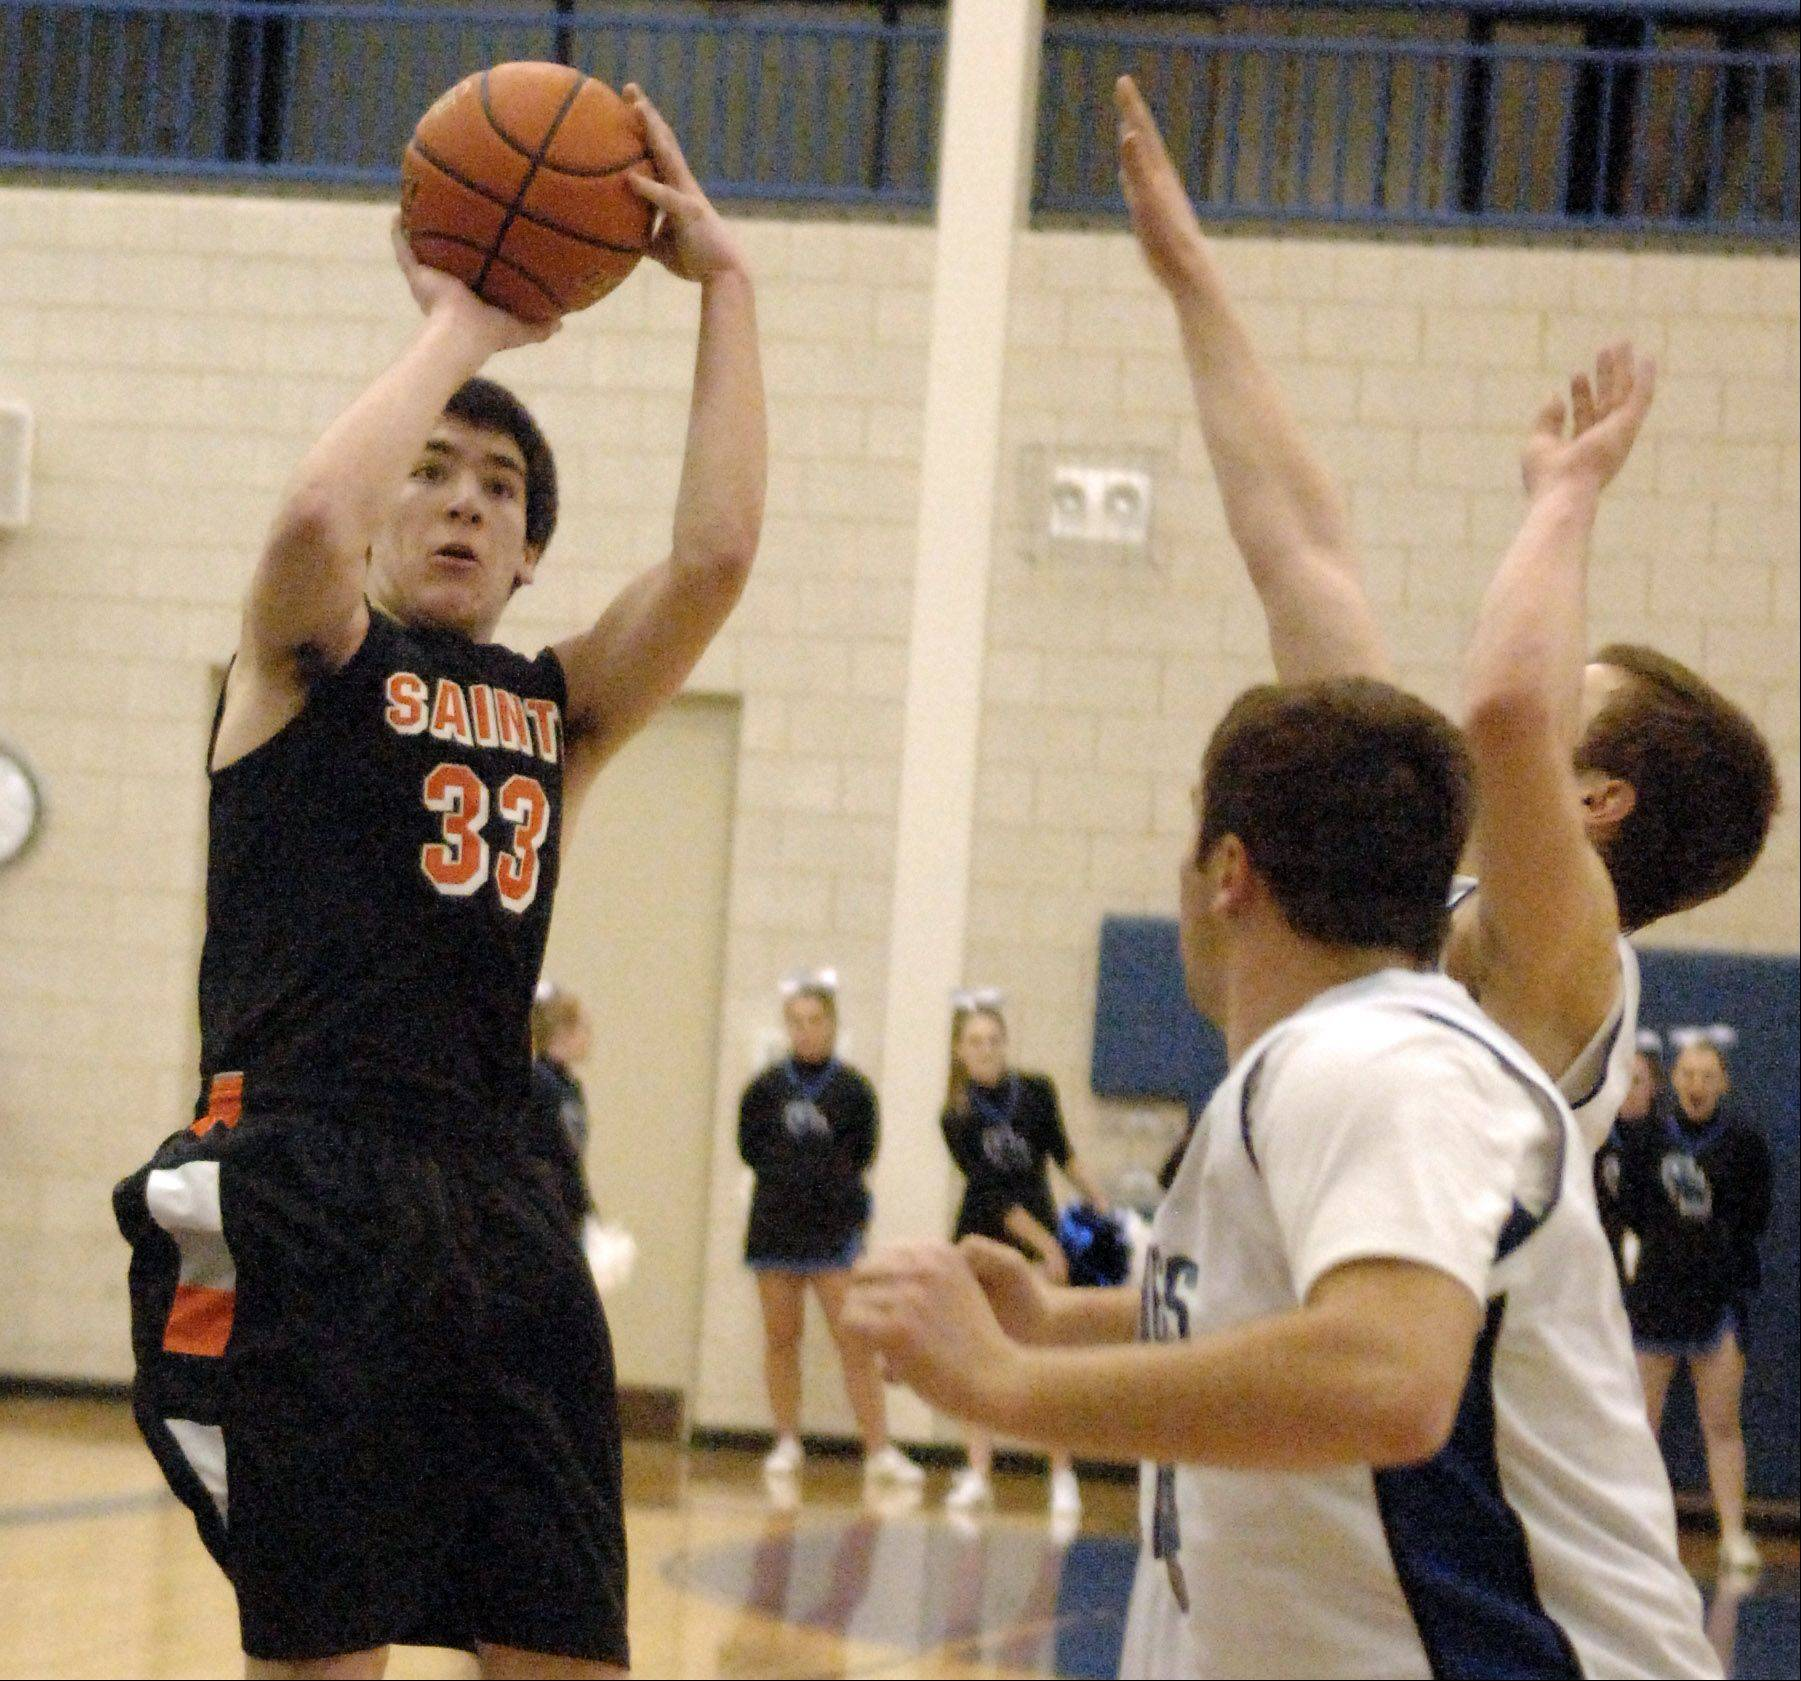 St. Charles East's Jake Asquini scores from the outside during Friday's game in Geneva.